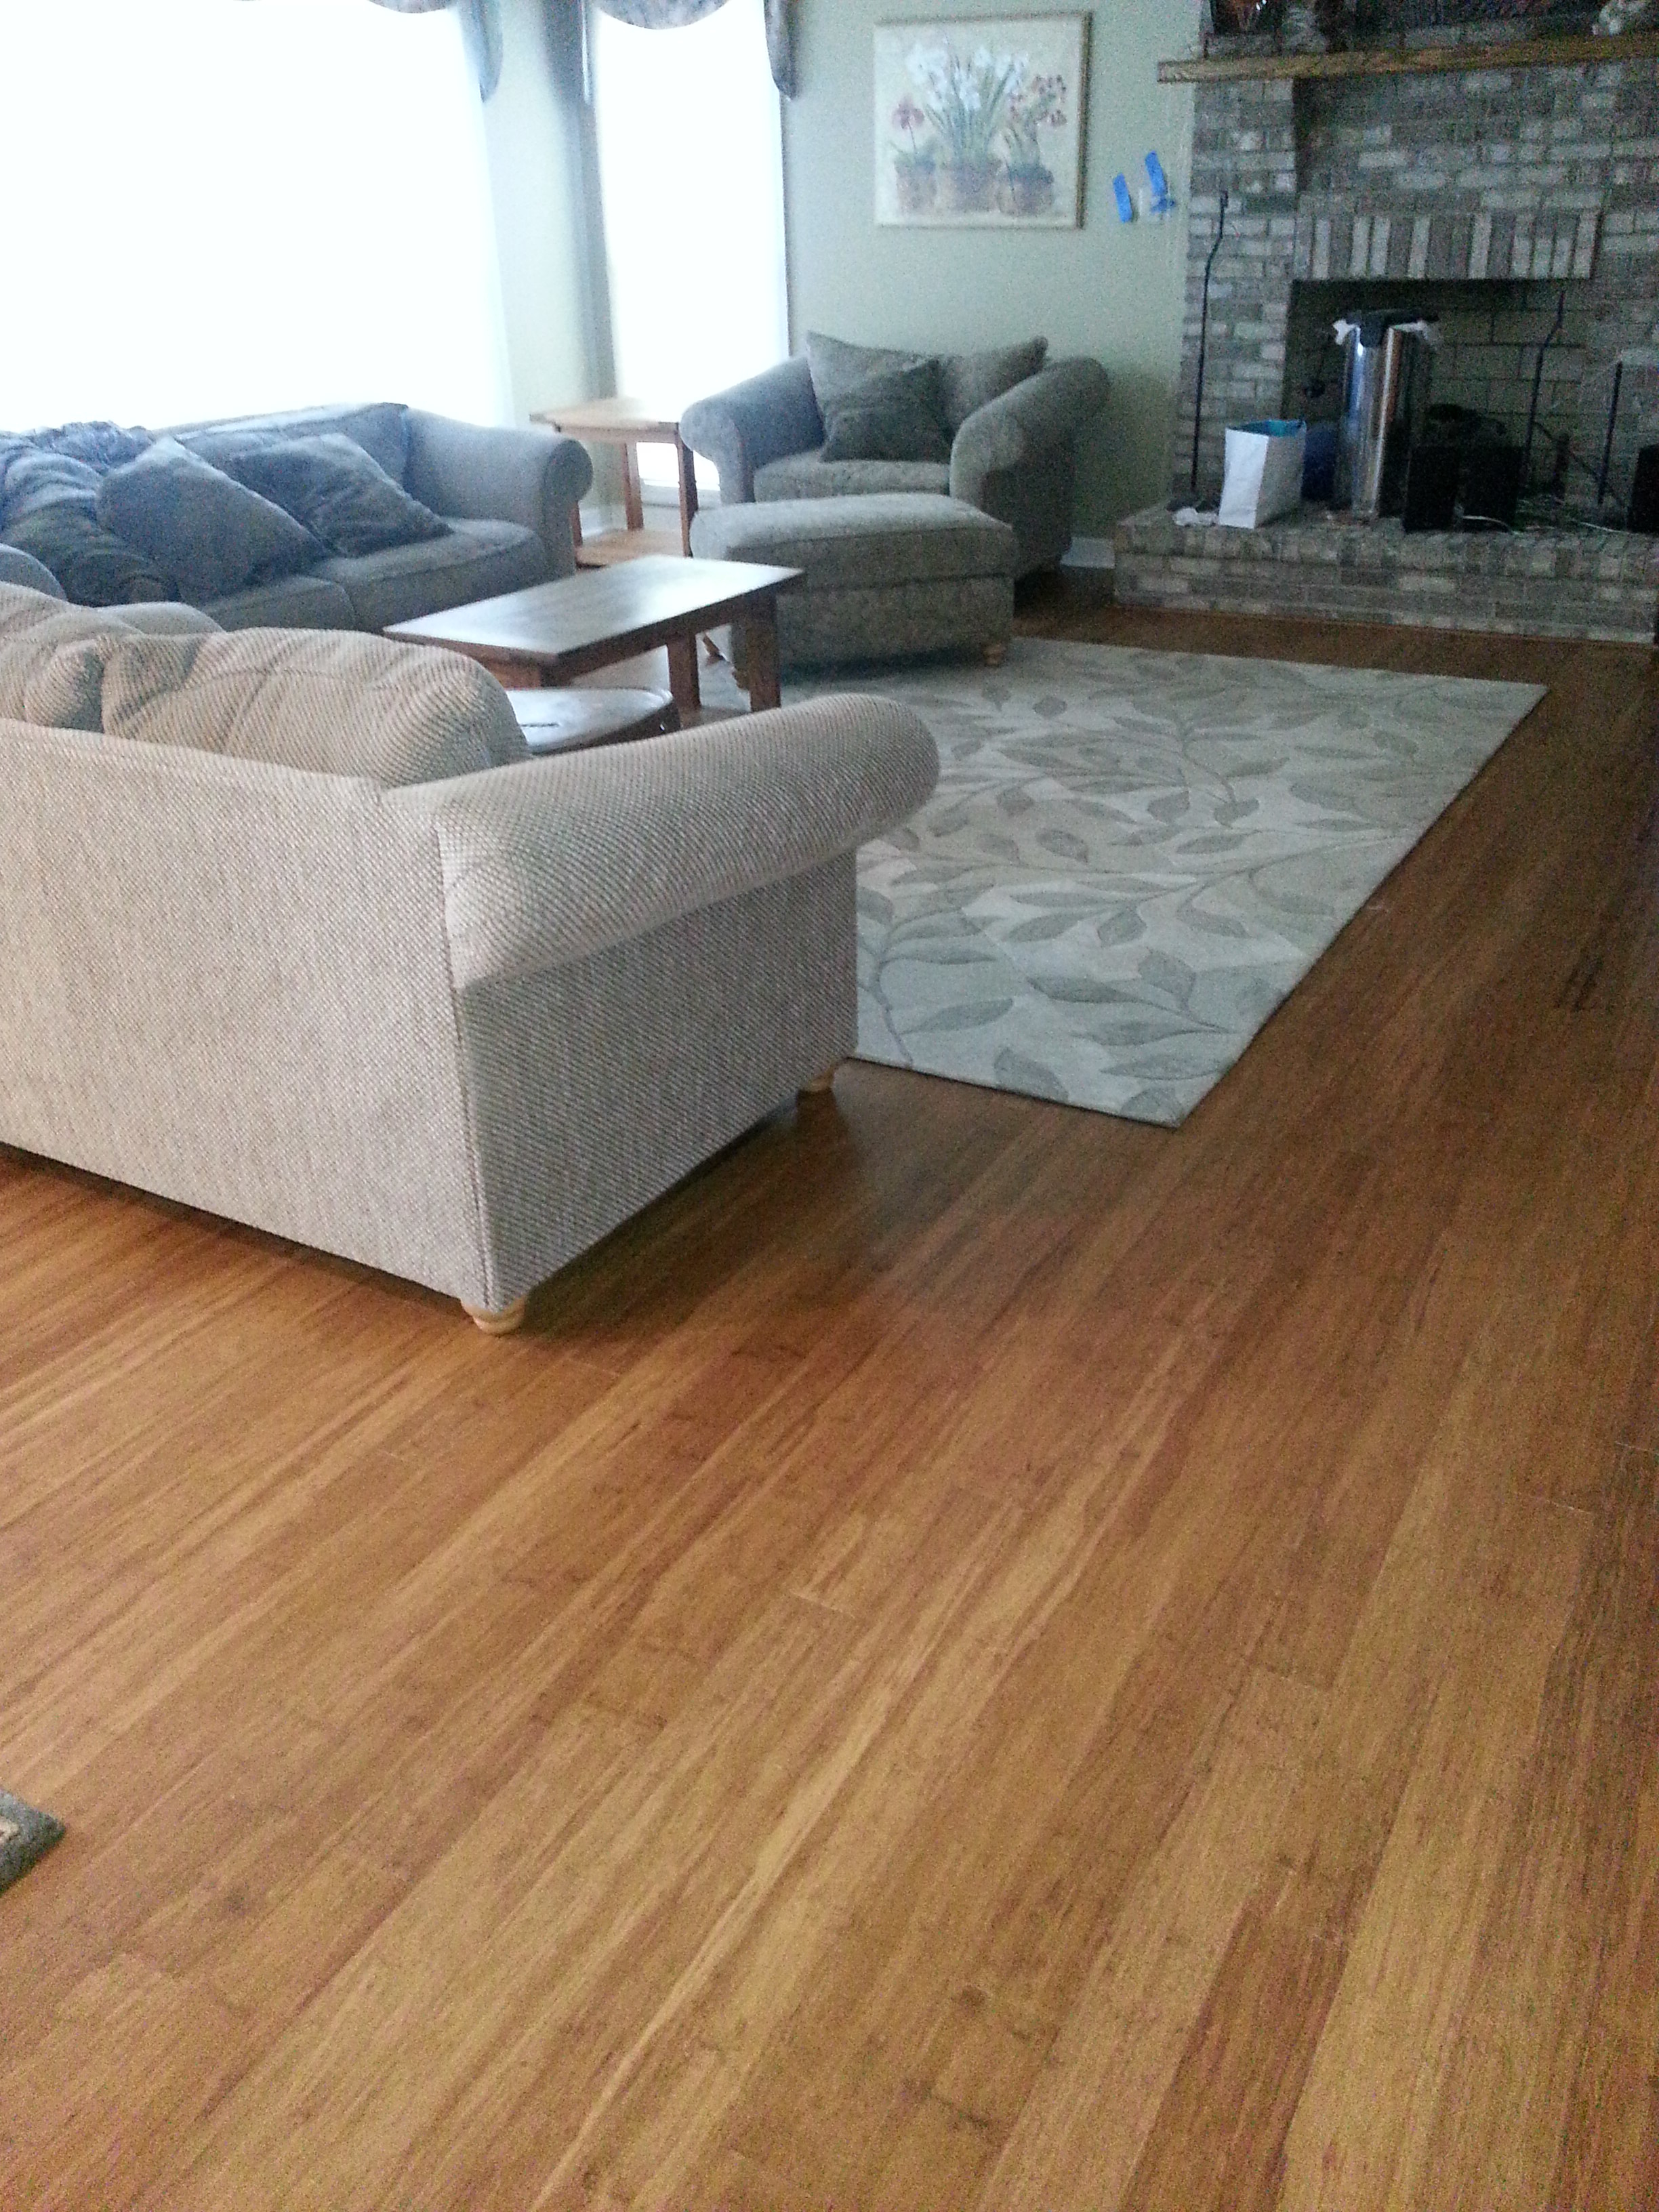 Floorgem services inc columbia md business profile for Flooring columbia md